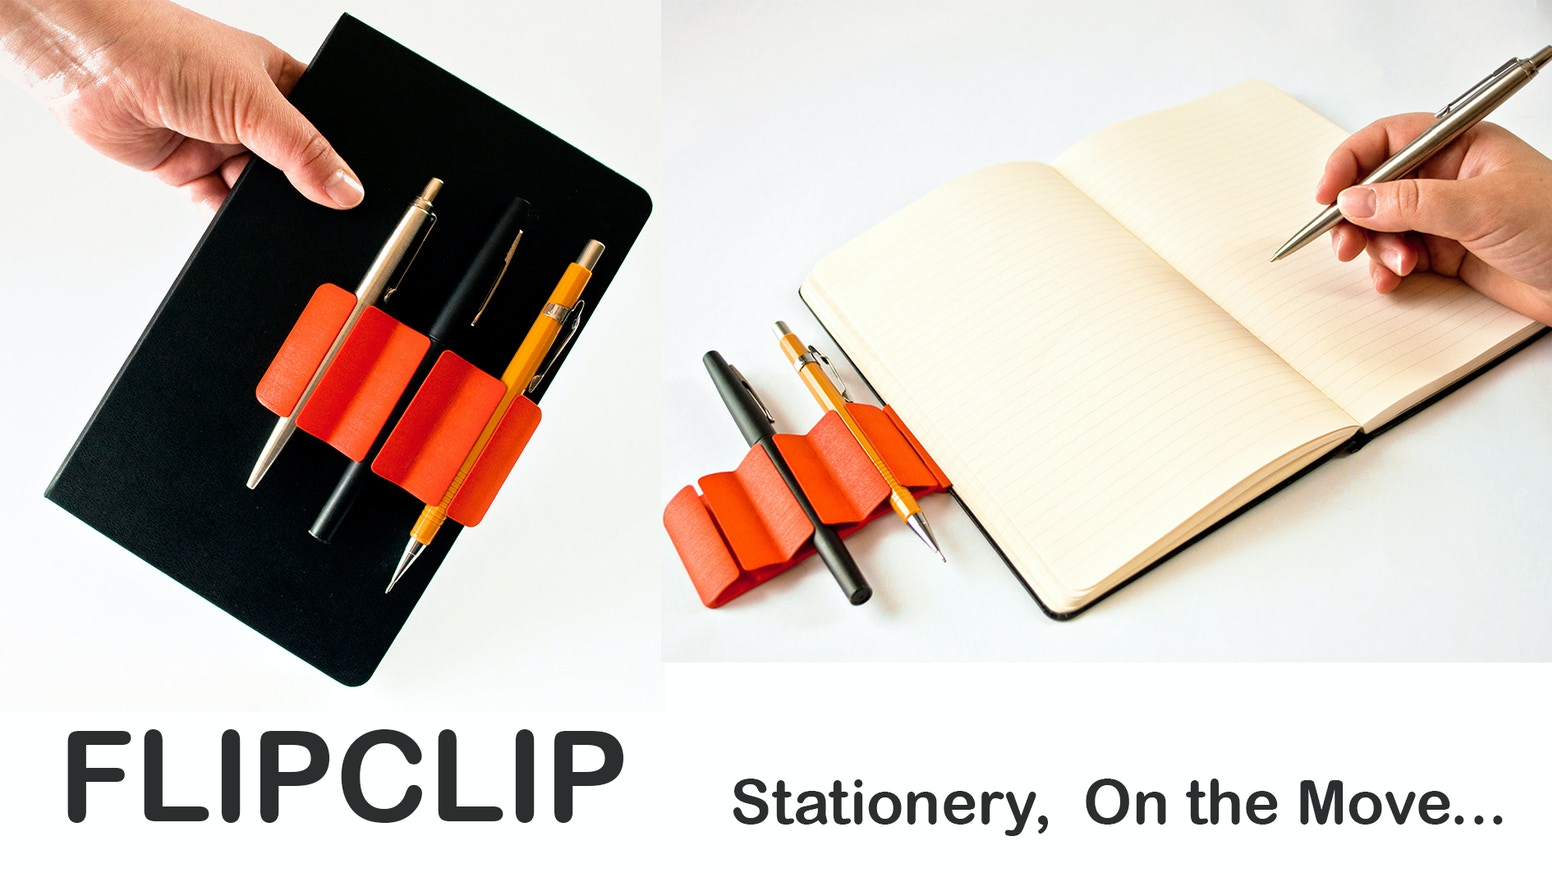 FLIPCLIP attaches to any notebook, whether on the move or at a desk, have easy storage and access to your most essential stationery!